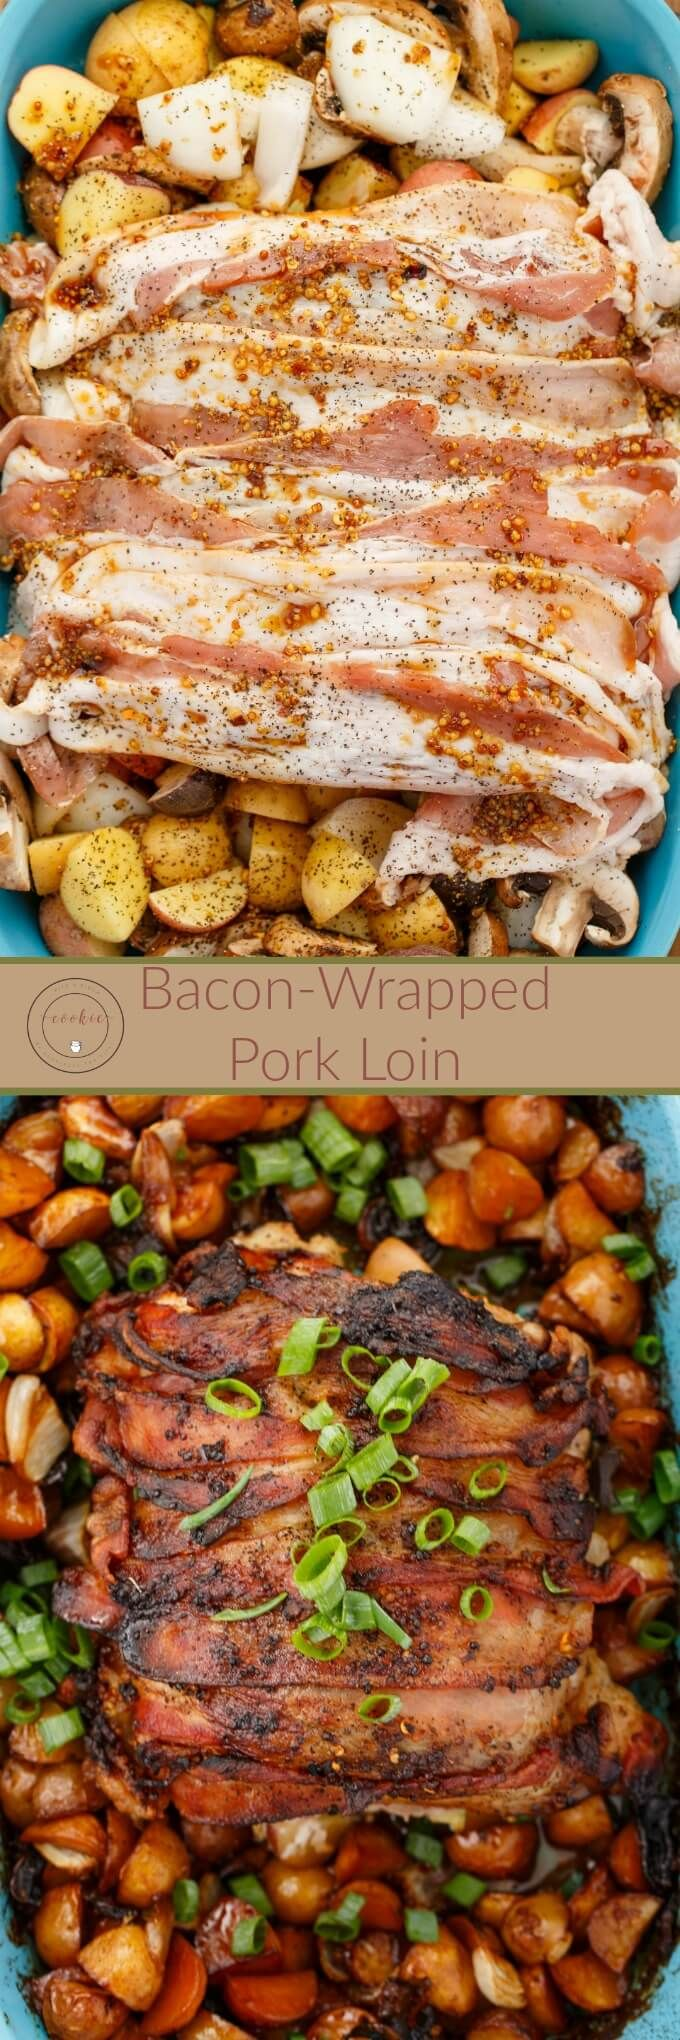 Bacon-Wrapped Pork Loin | http://thecookiewriter.com | @thecookiewriter | #pork #bacon | One of my most popular recipes on the blog gets a makeover where you cook the veggies with the pork loin!